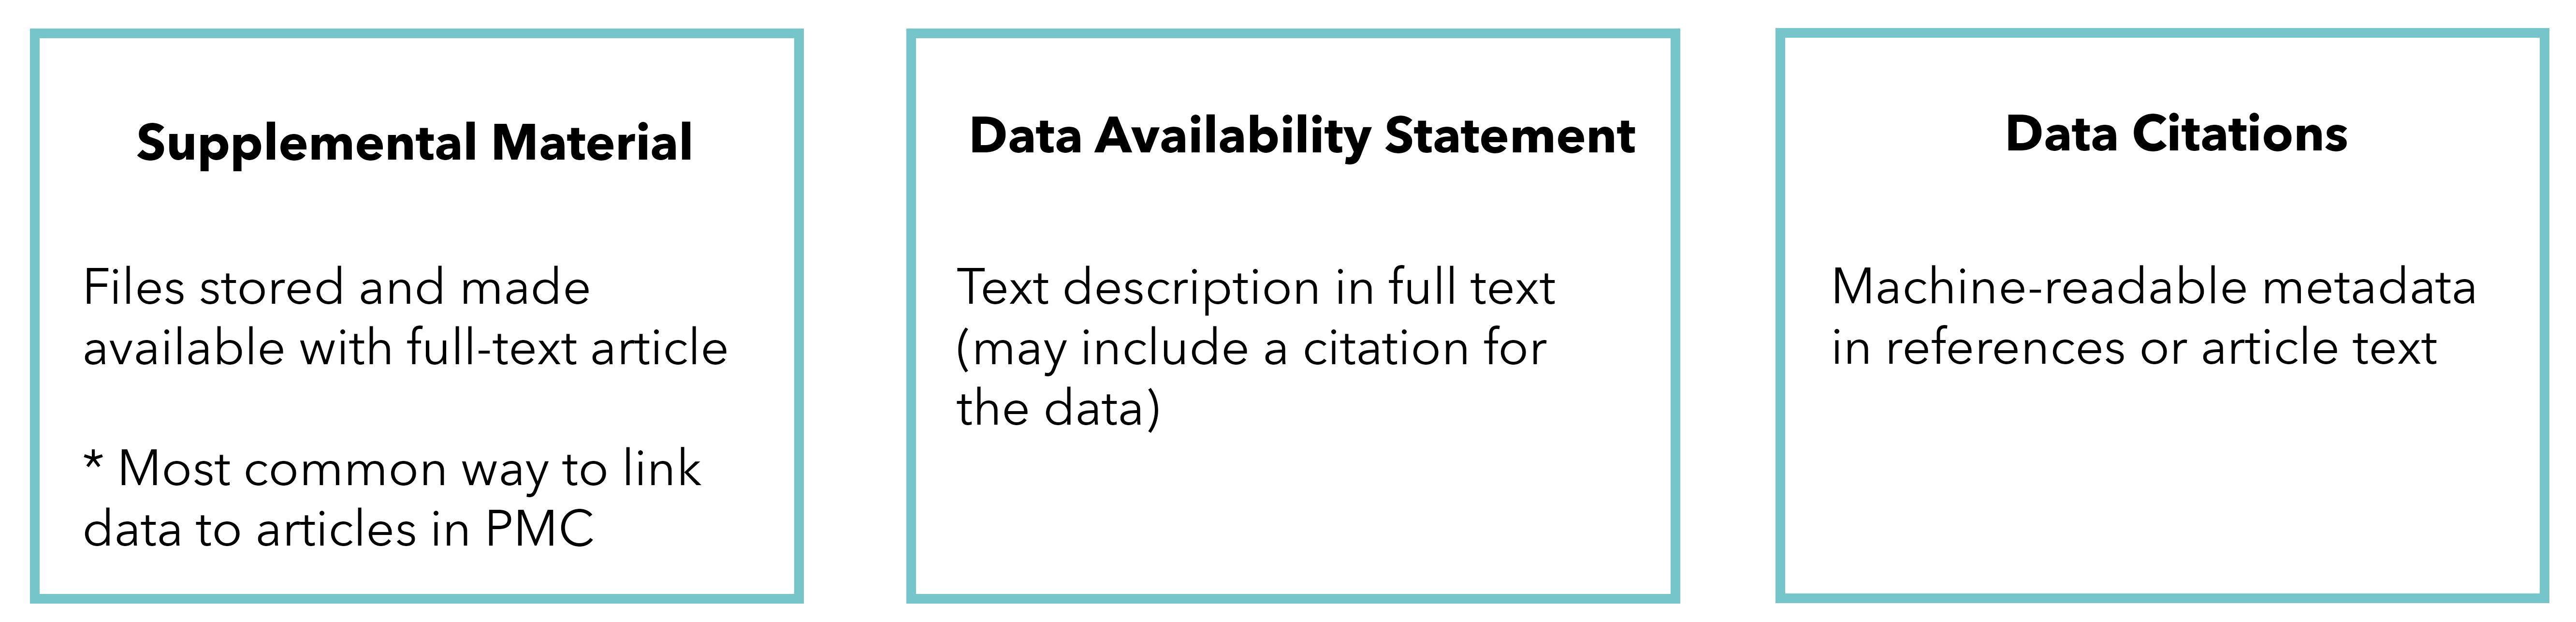 supplemental material, data availability statement, and data citations